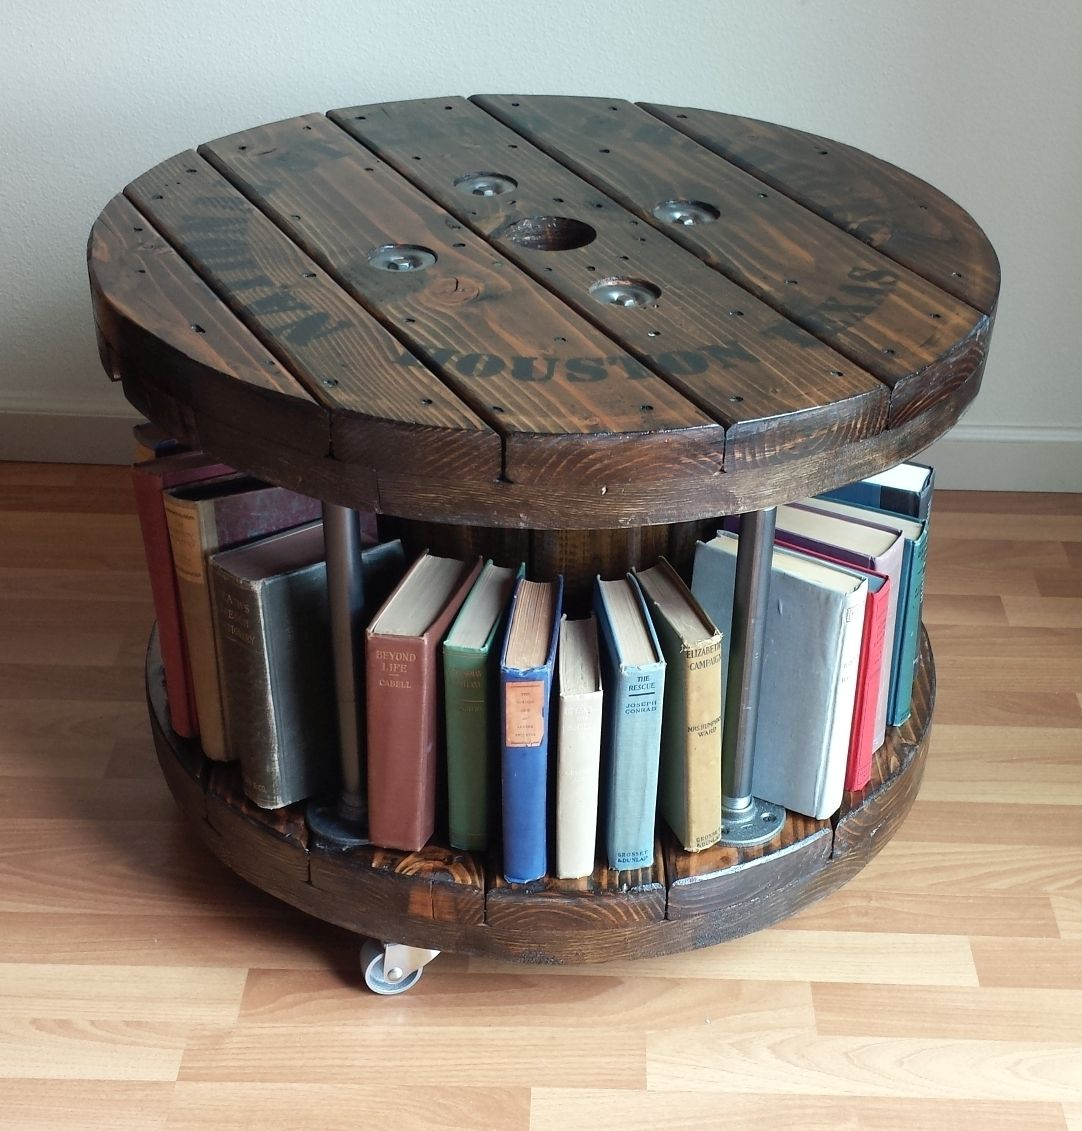 Buy Antiqued Glass Coffee Table Gun Metal Base At Fusion: Rustic Reclaimed Wood Wire Reel Coffee Table Spool